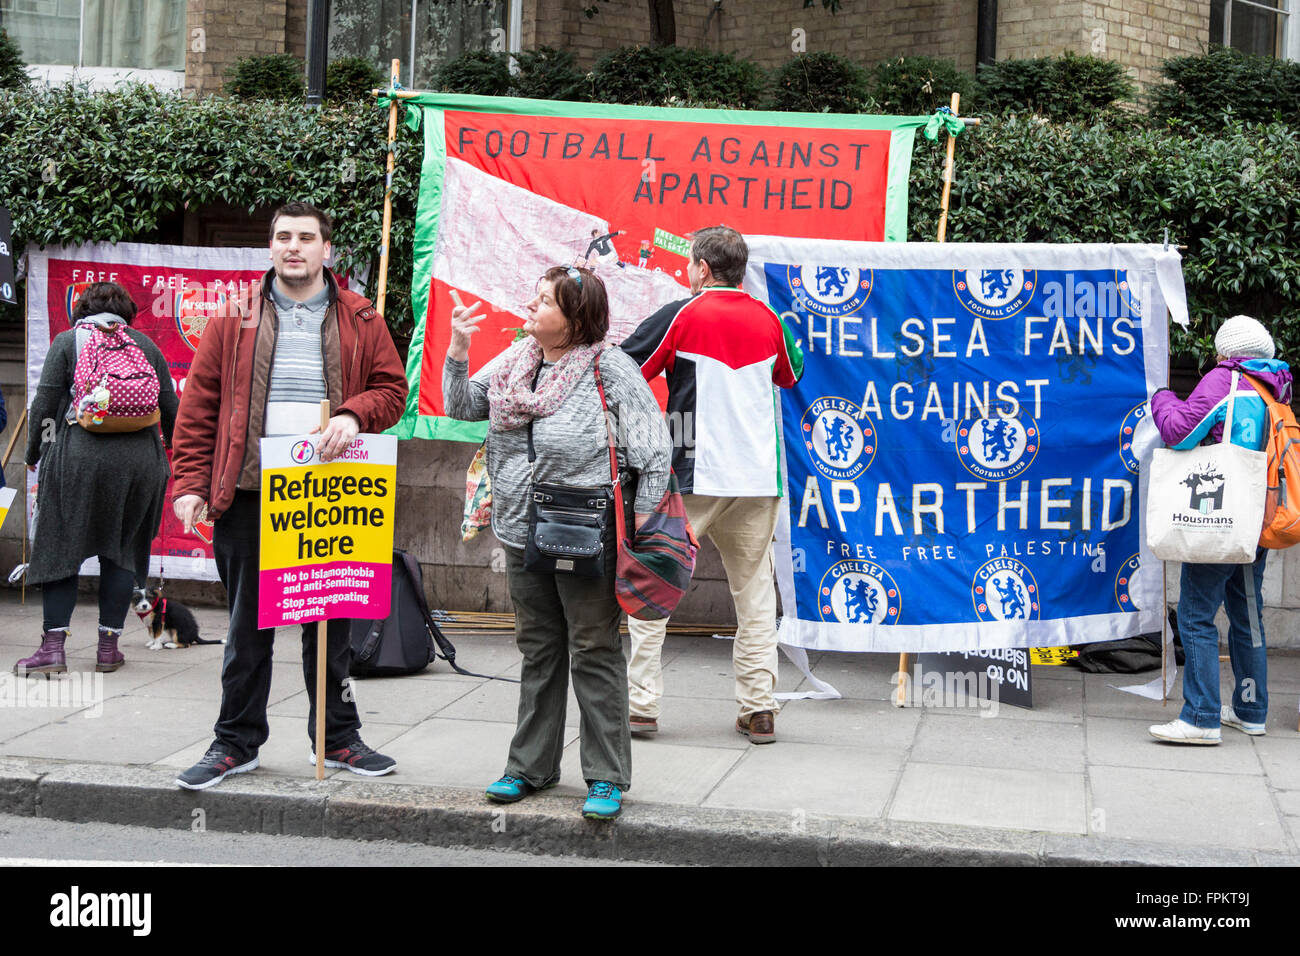 London, UK. 19 March 2016. Chelsea football fans against apartheid. Thousands of protesters took to the street to - Stock Image